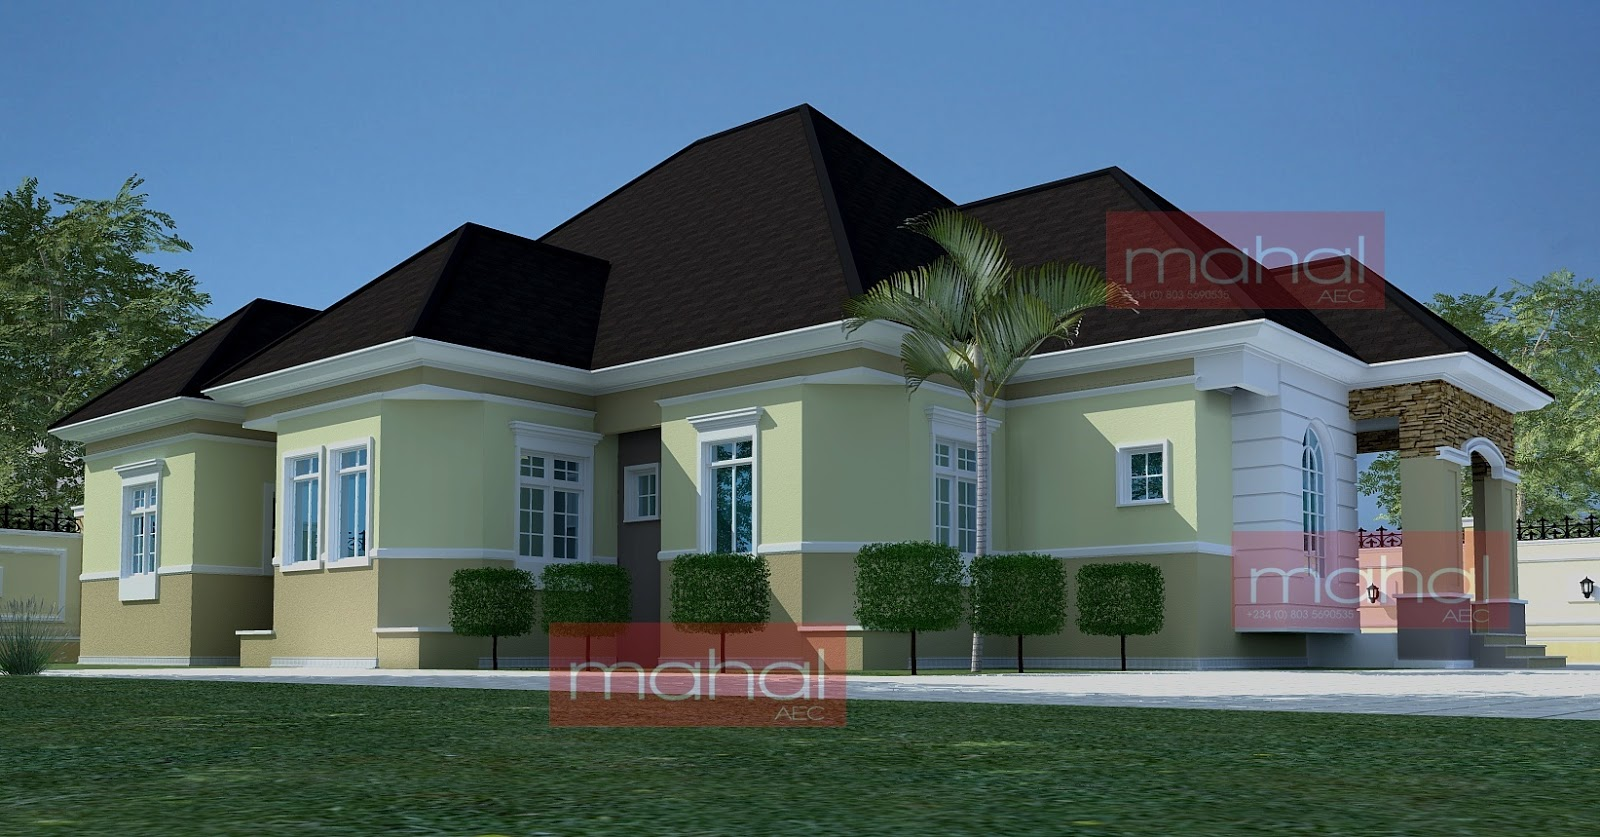 Duplex design and bungalows in nigeria joy studio design for House plans nigeria